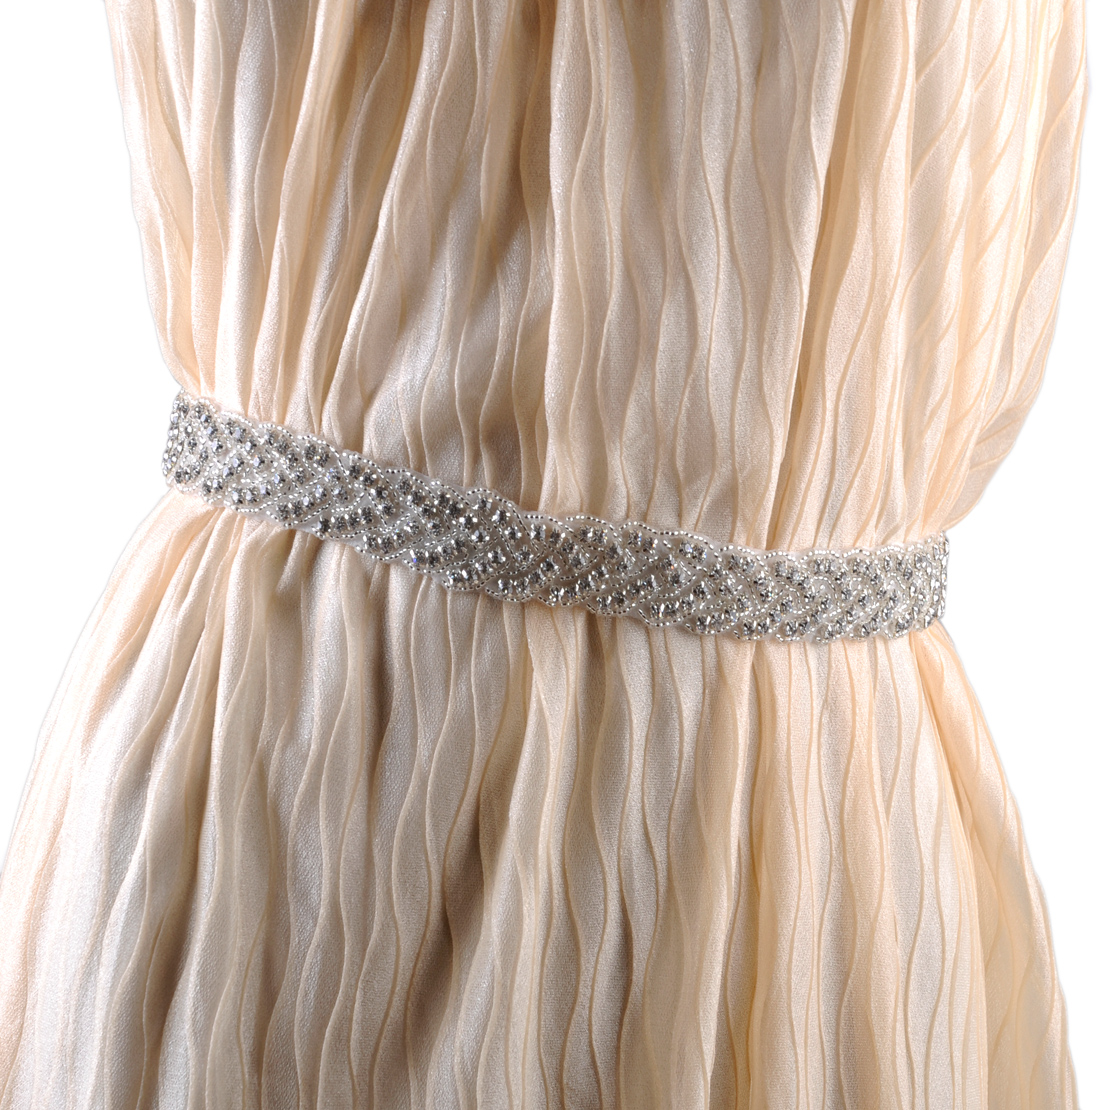 Handmade wedding dress bridal sash belt appliques for Wedding dress sash with rhinestones